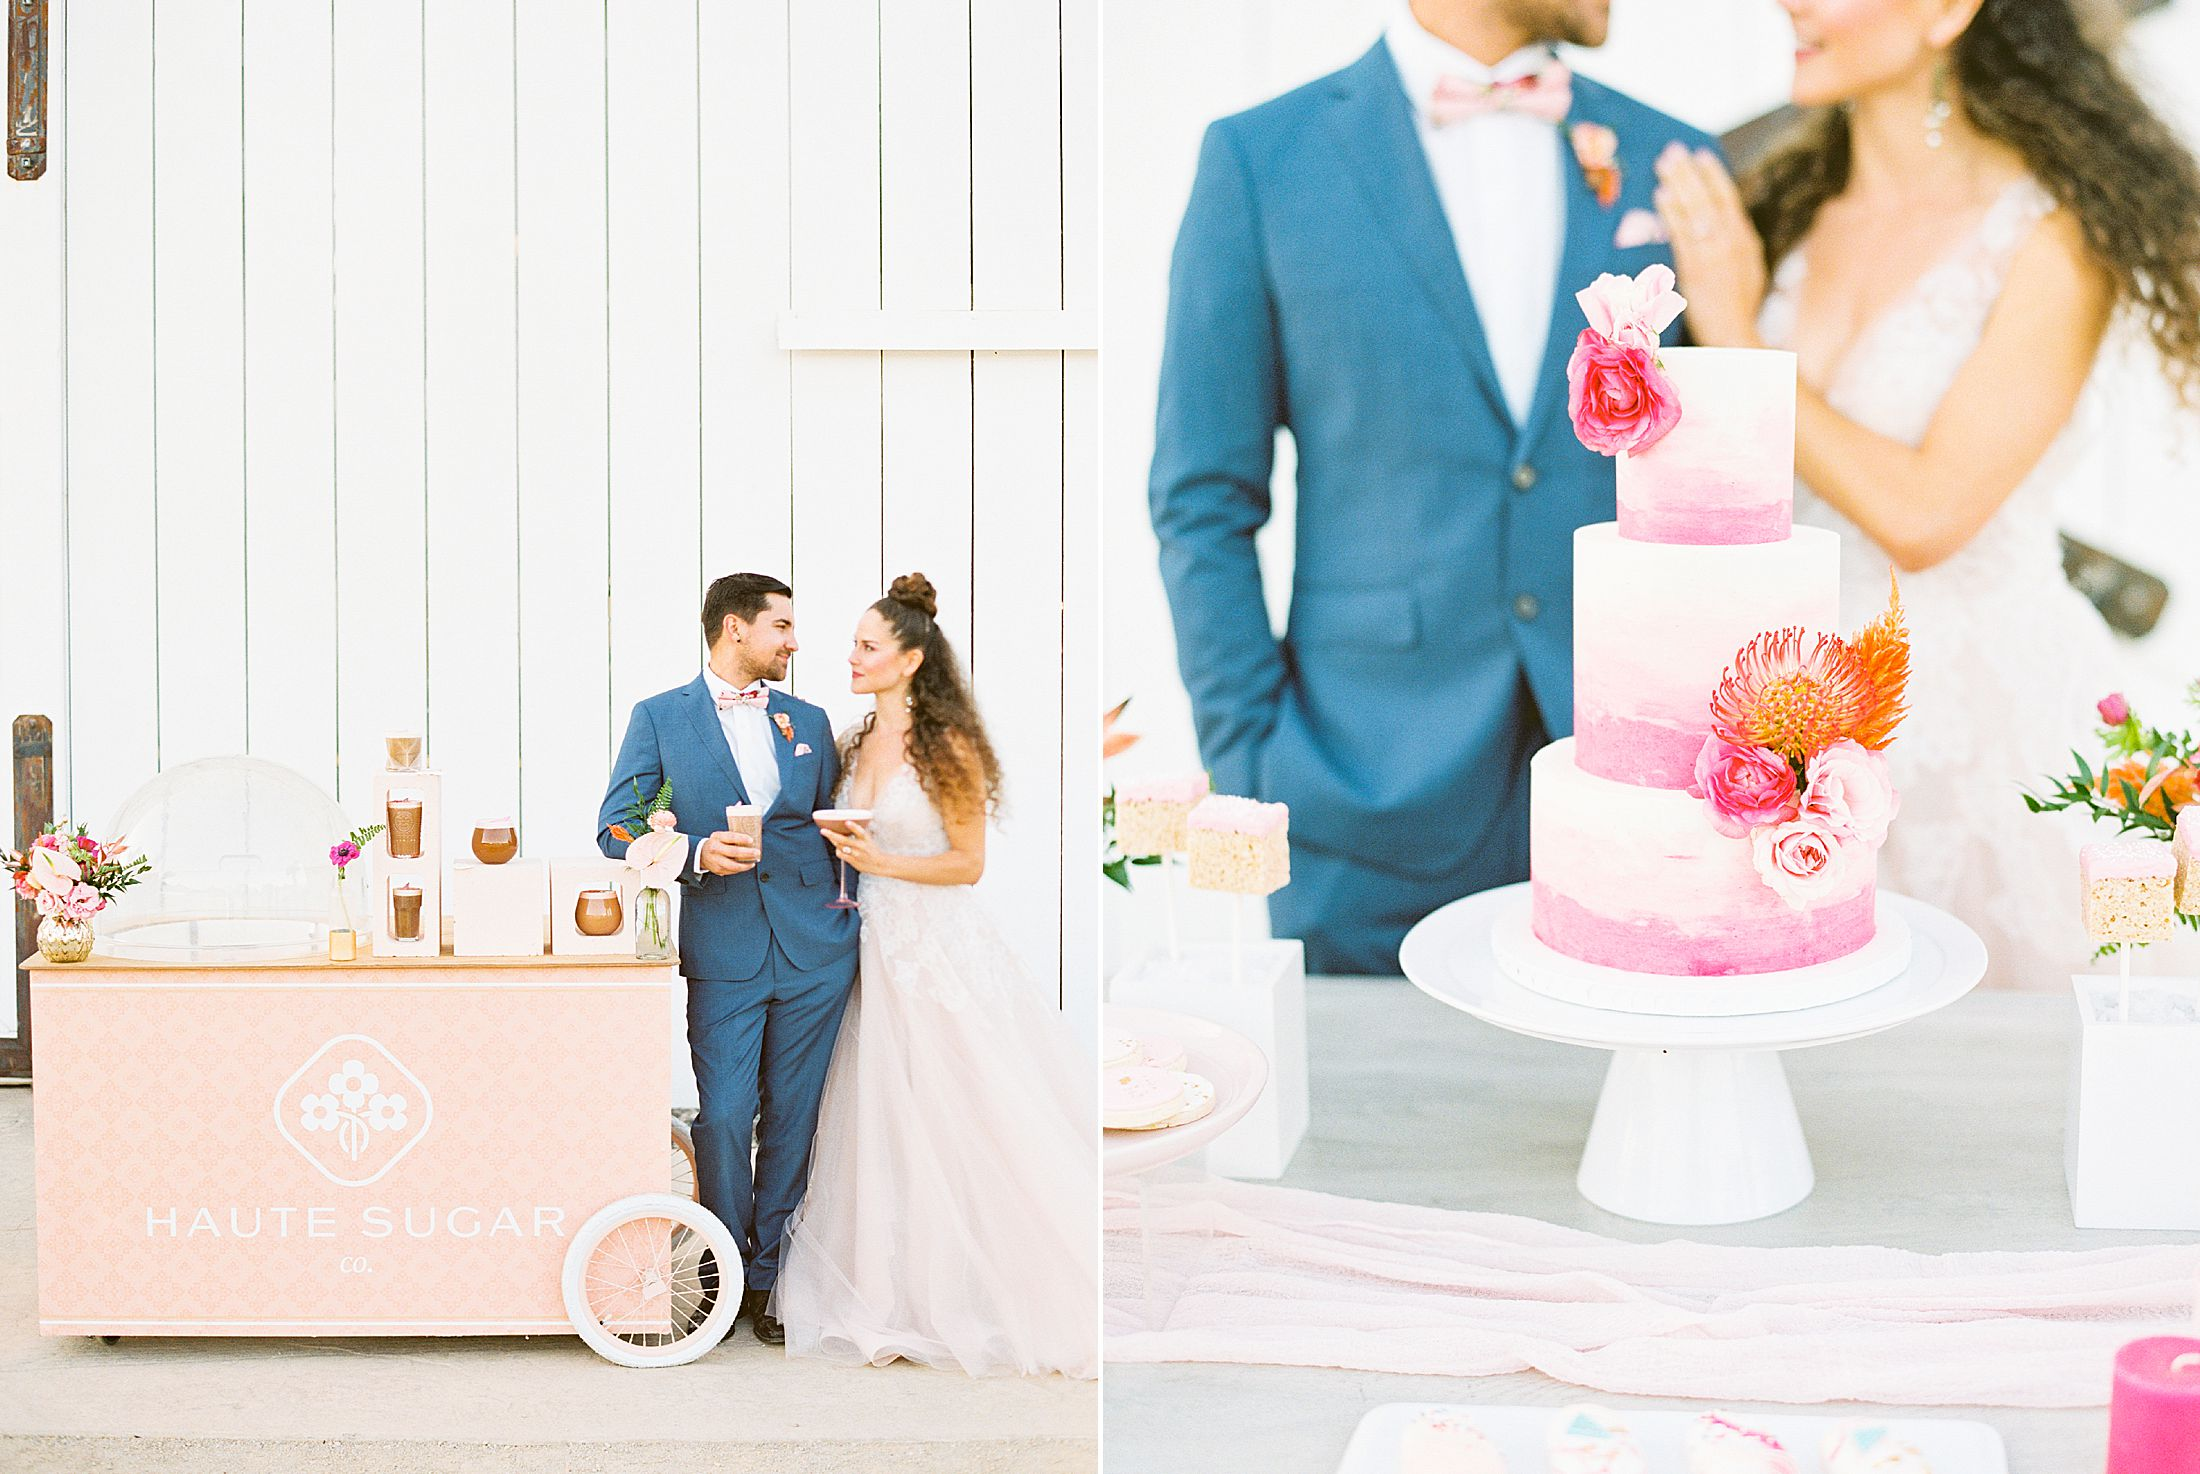 White Barn Edna Valley Wedding Inspiration - San Luis Obispo Wedding - Featured on Green Wedding Shoes - Ashley Baumgartner - FM Events SLO - SLO Wedding Photographer_0033.jpg